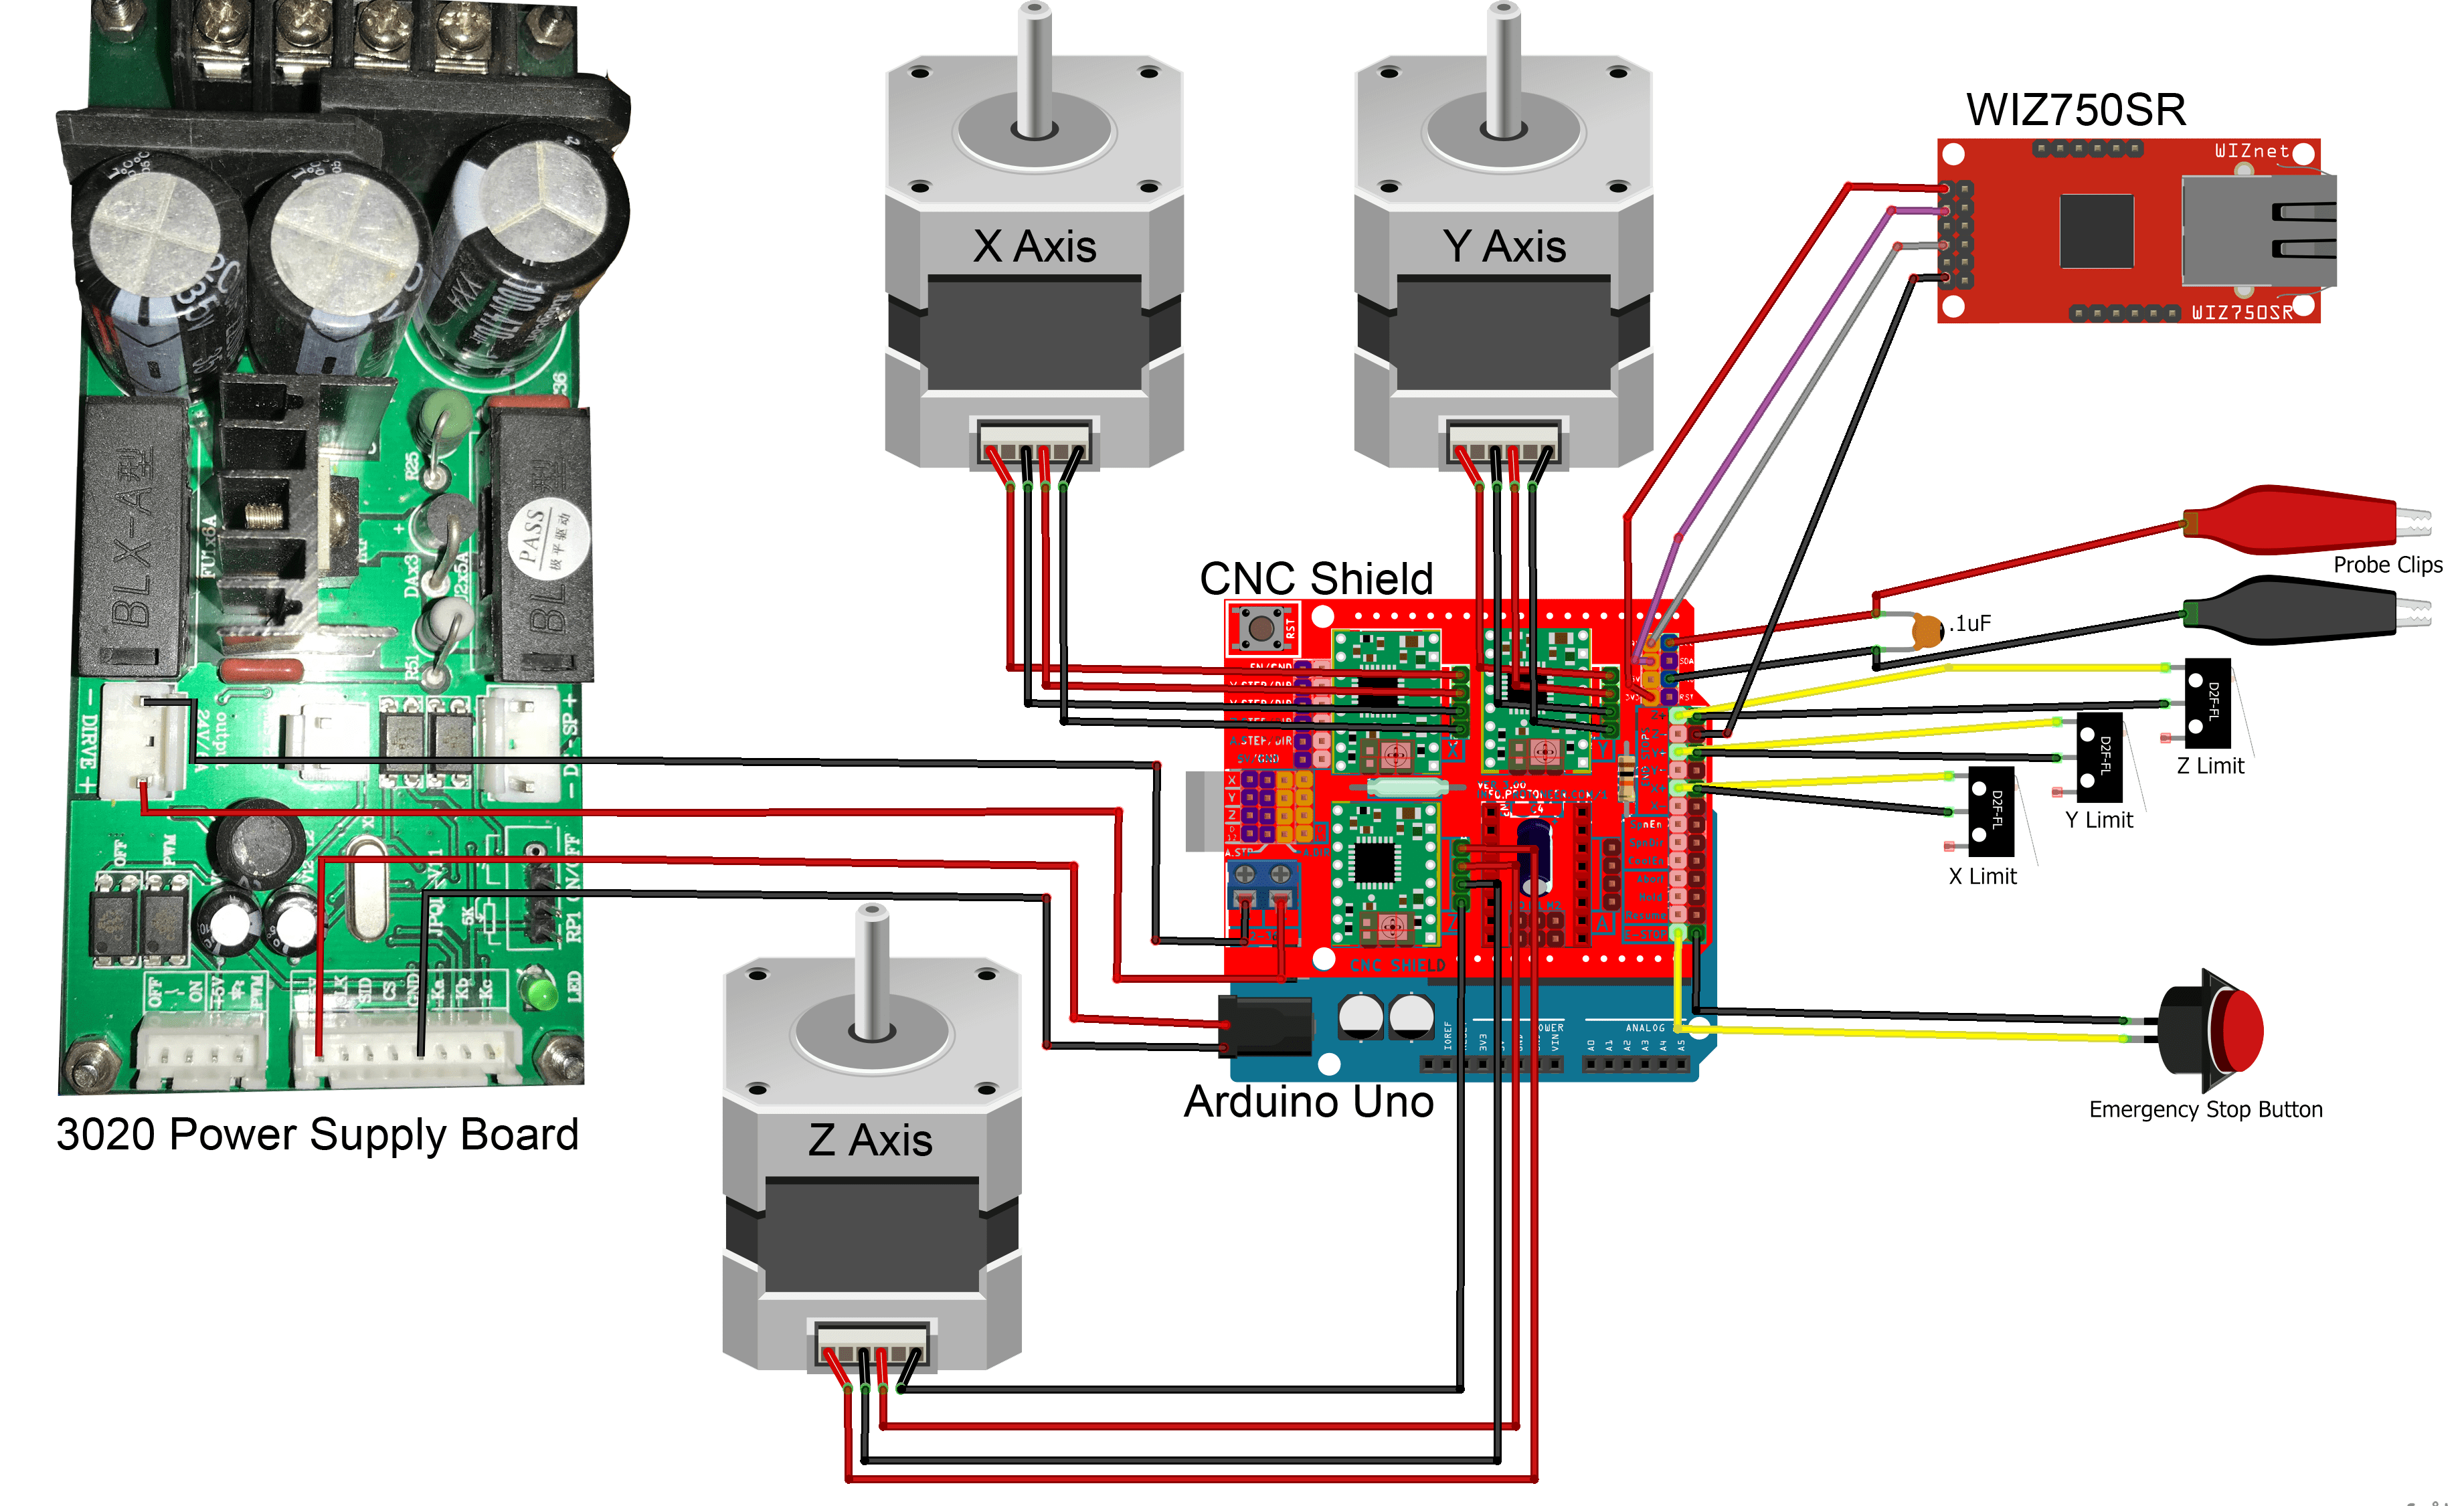 switches for cnc wiring diagram wiring library diagram h7 honeywell fan limit switch wiring diagram cnc [ 3682 x 2251 Pixel ]